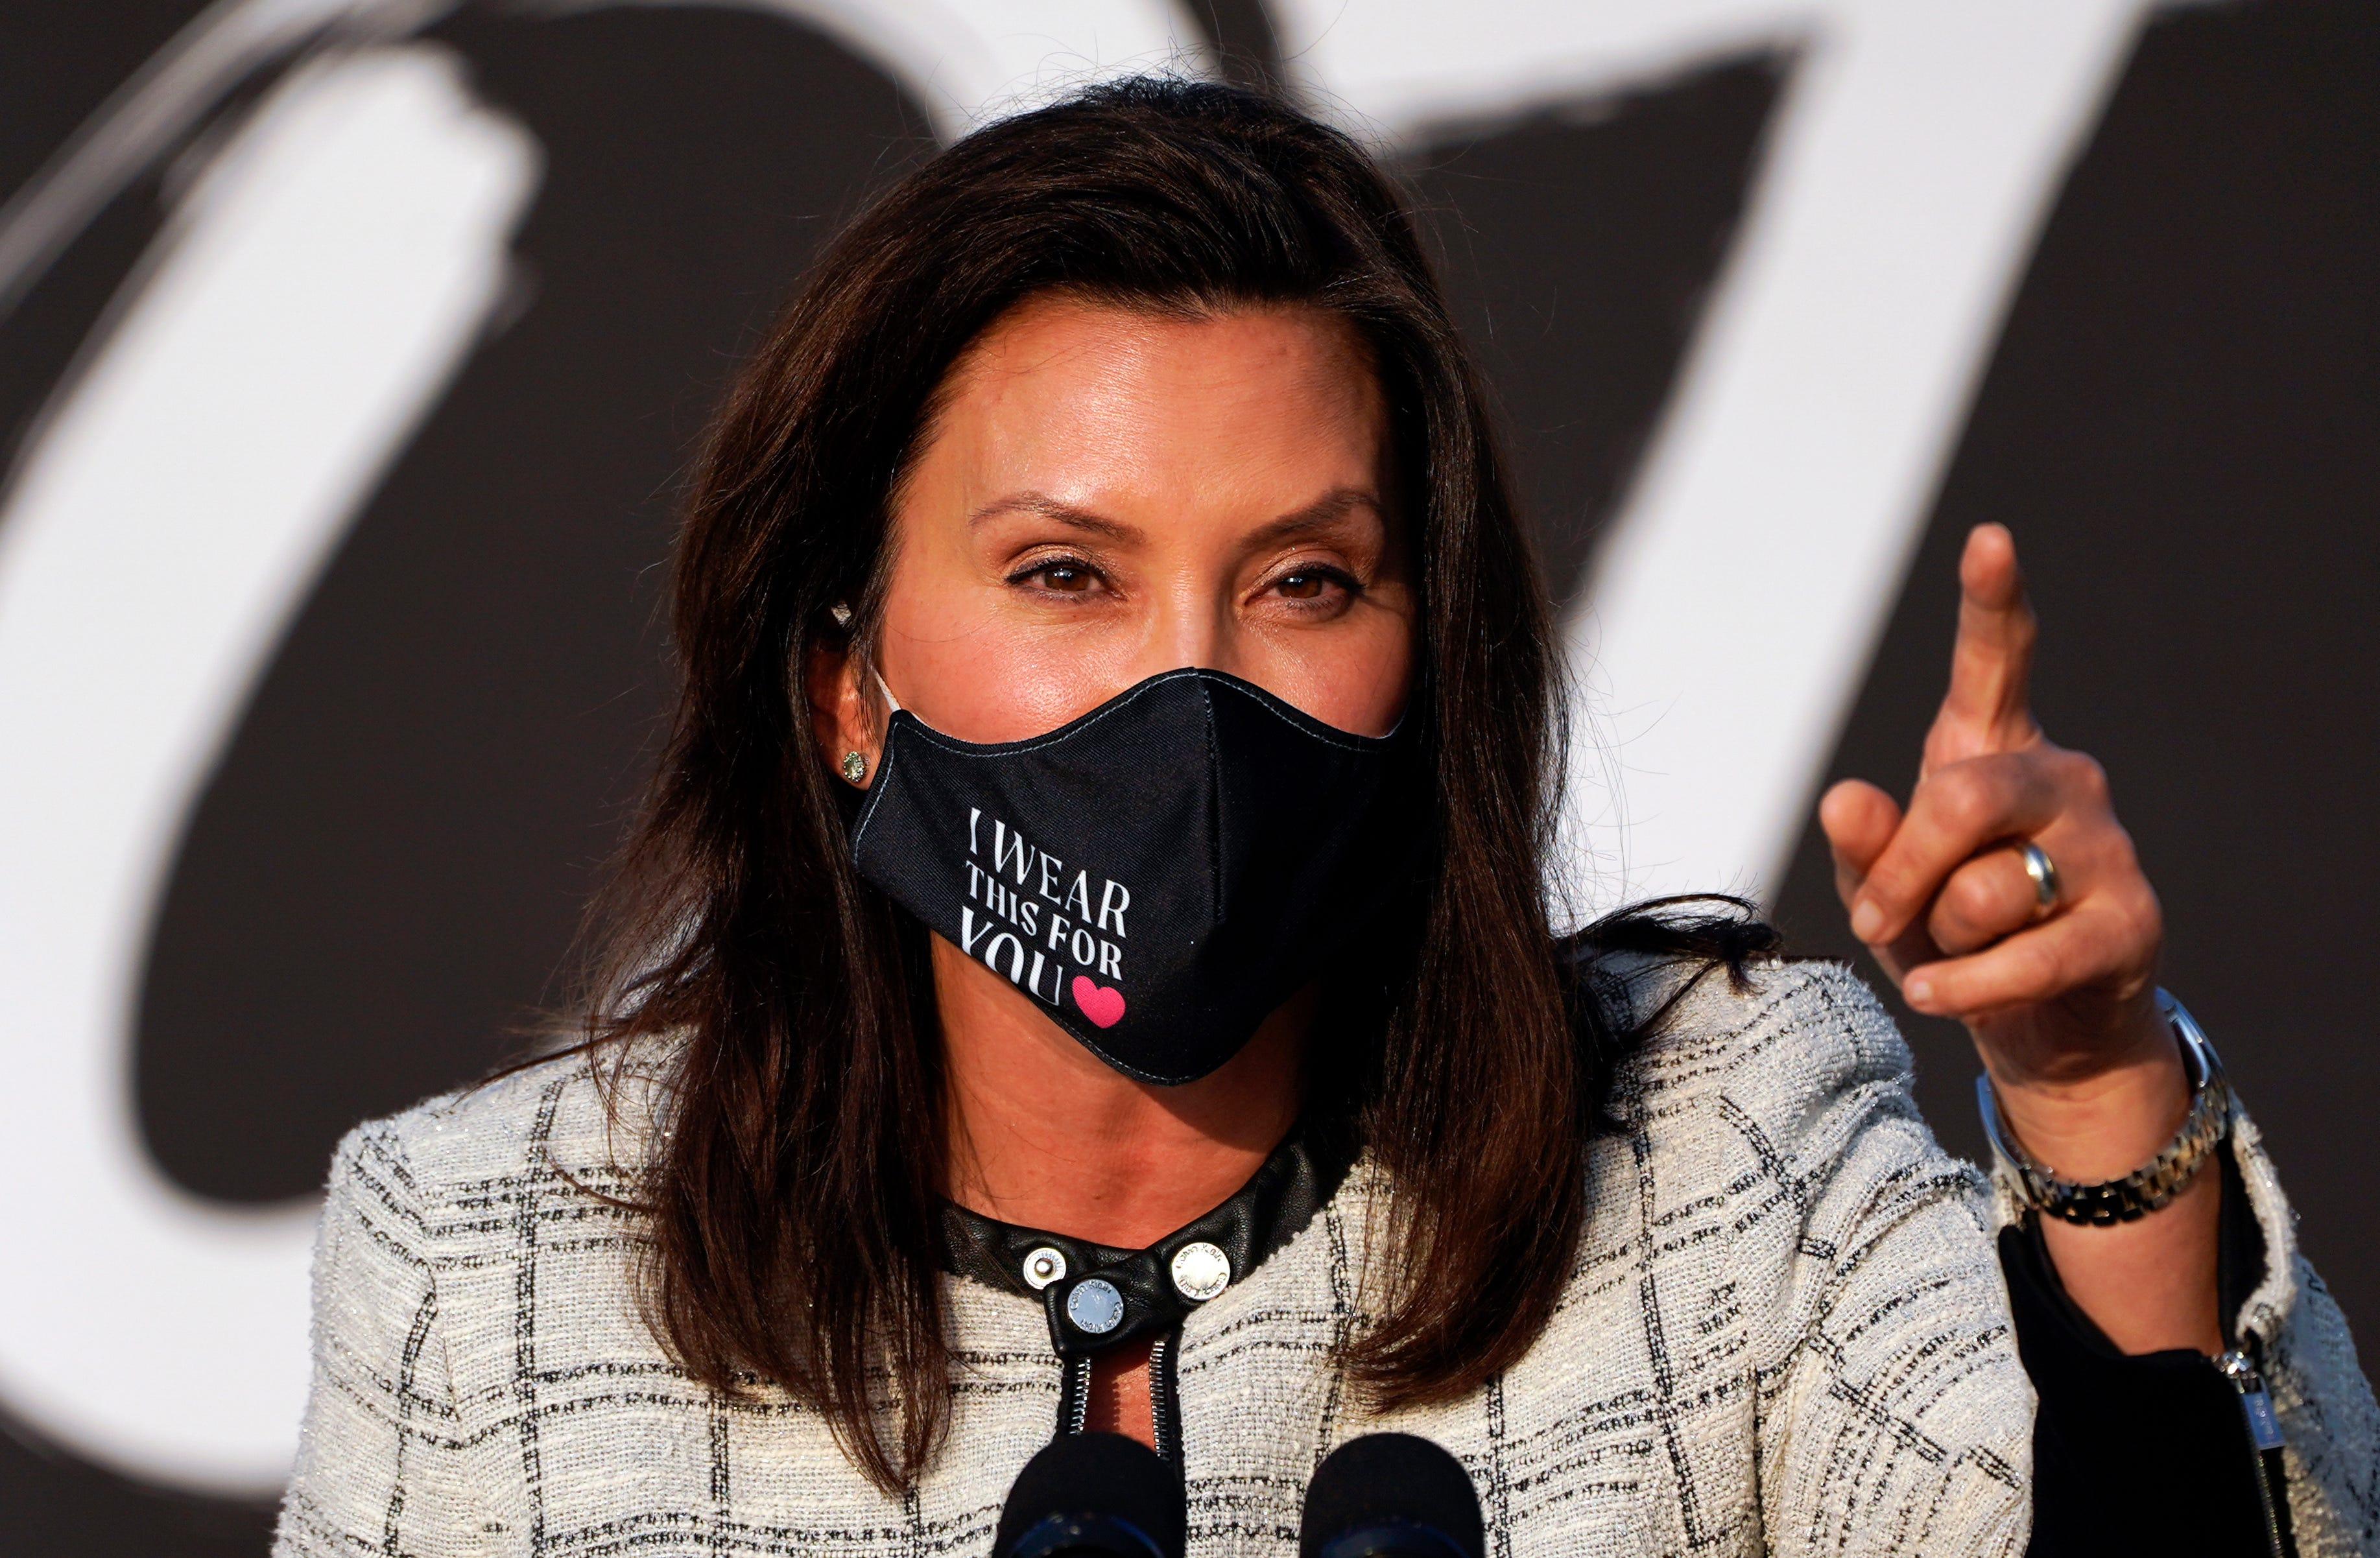 Trump says Whitmer didn t say  thank you  after thwarted kidnapped plot. She did thank law enforcement